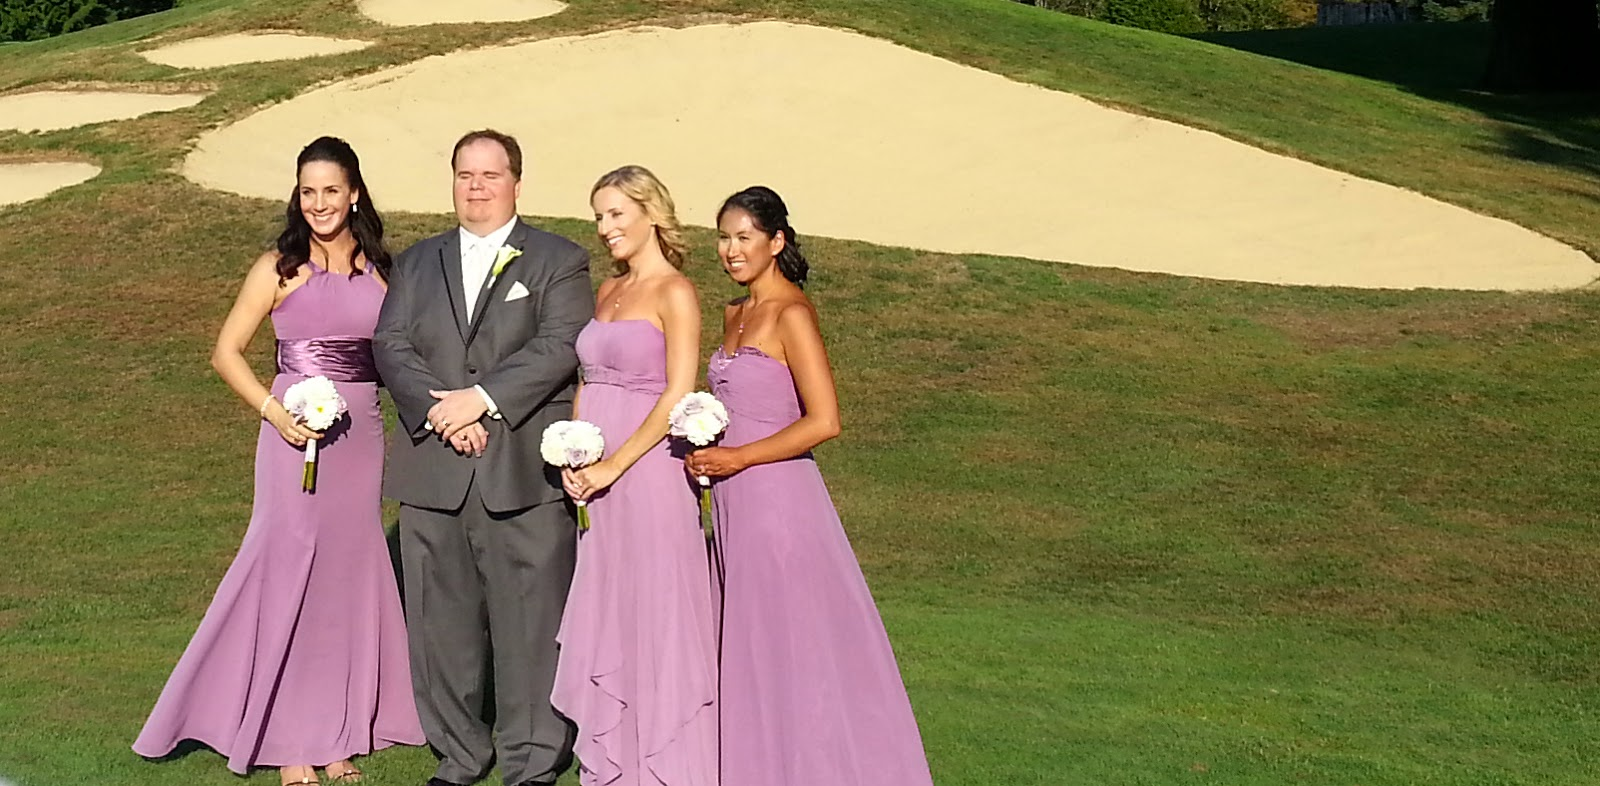 The Bear Creek Country Club signature sand traps - Patricia Stimac, Seattle Wedding Officiant